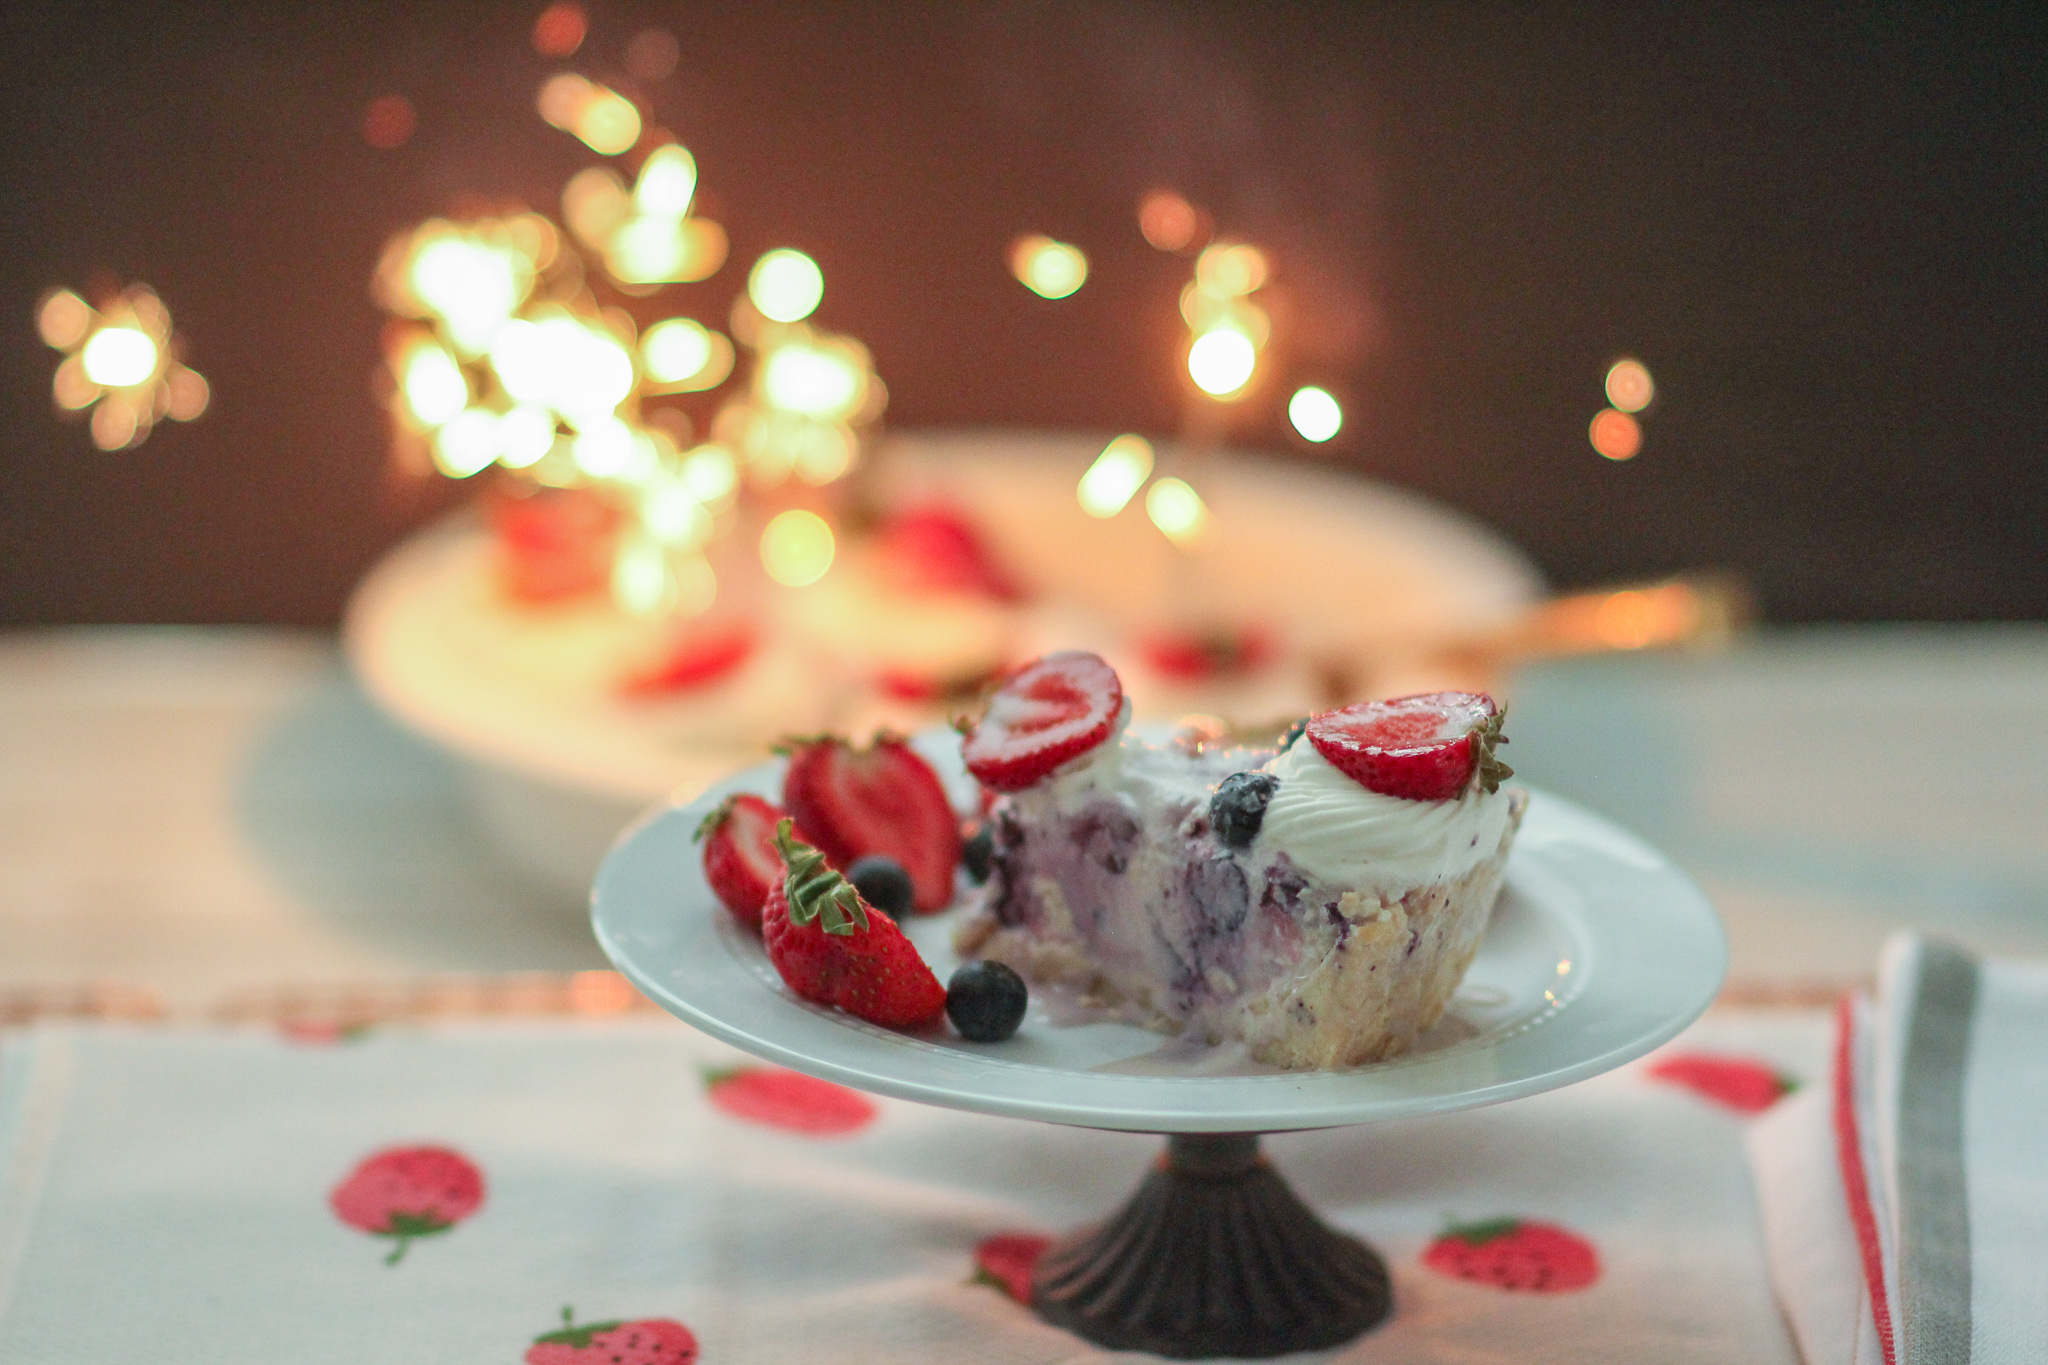 White Chocolate Strawberry Blueberry Ice Cream Cookie Pie